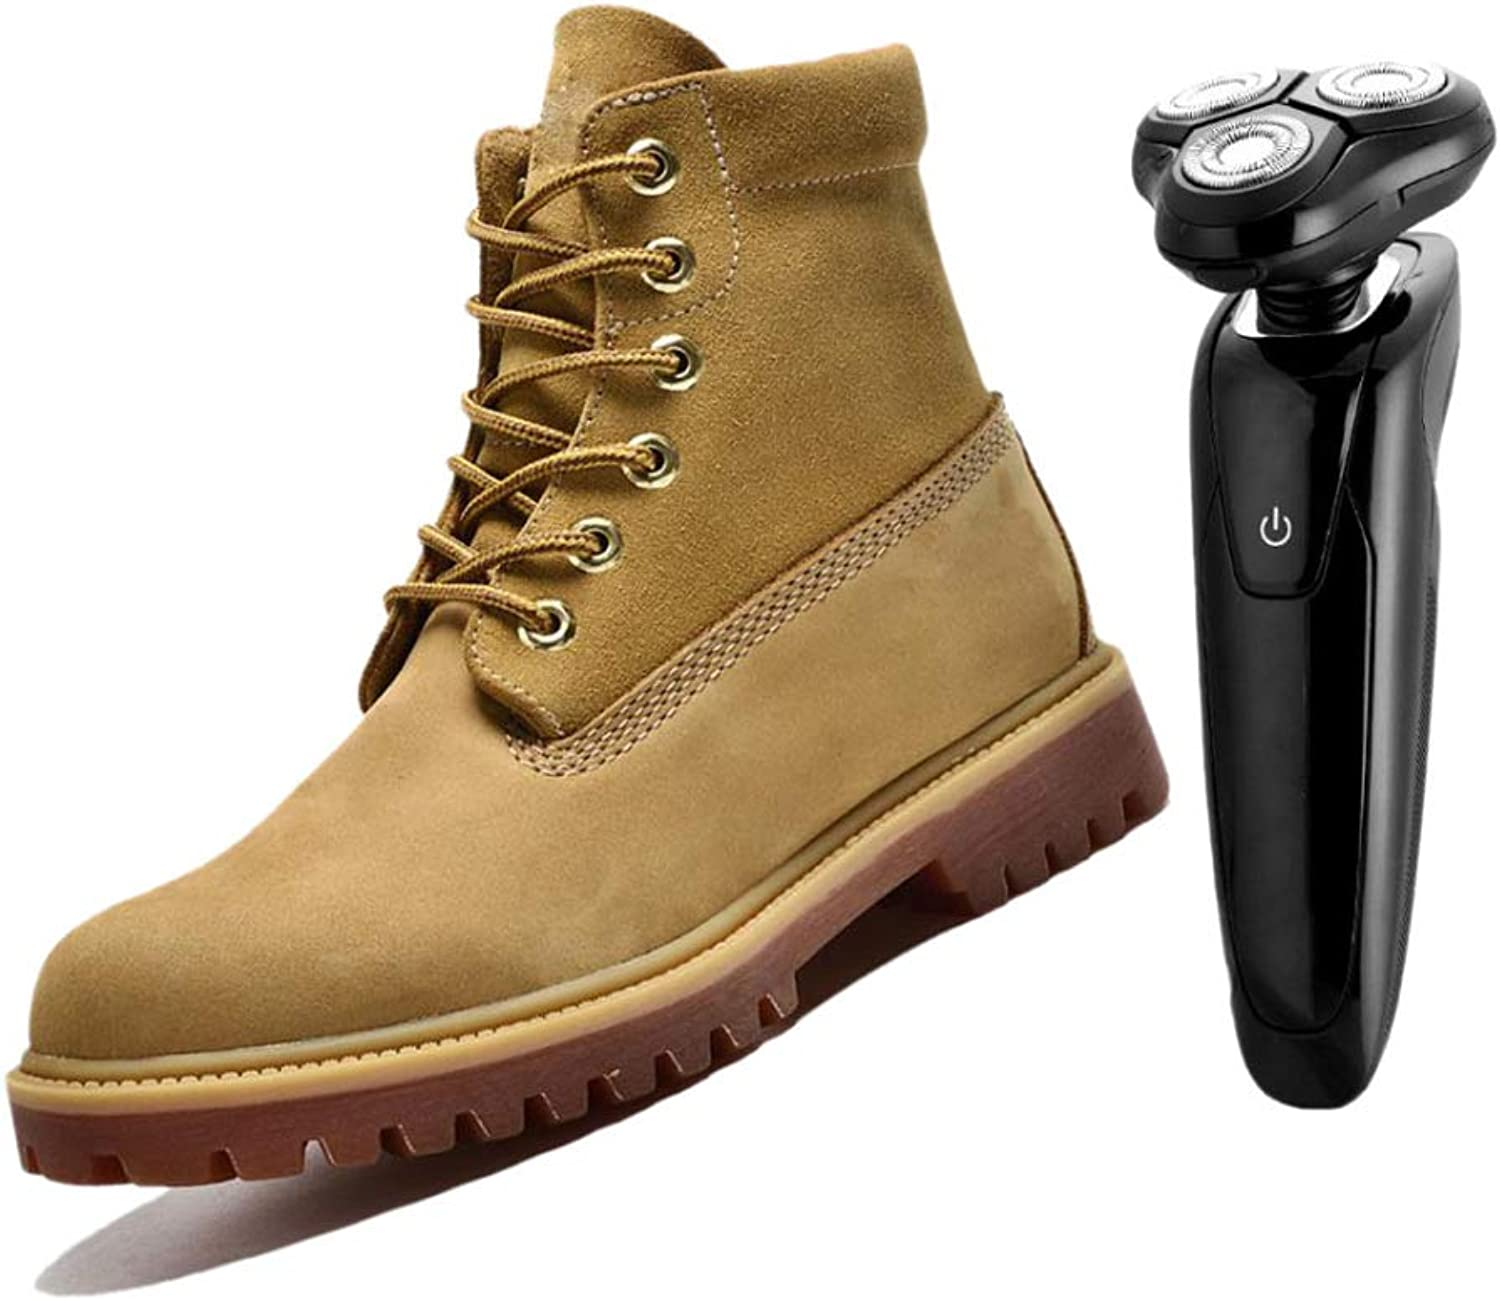 High-top Men's Lace-up Boots Desert Boots Yellow Brown bluee Breathable Outdoor On Foot